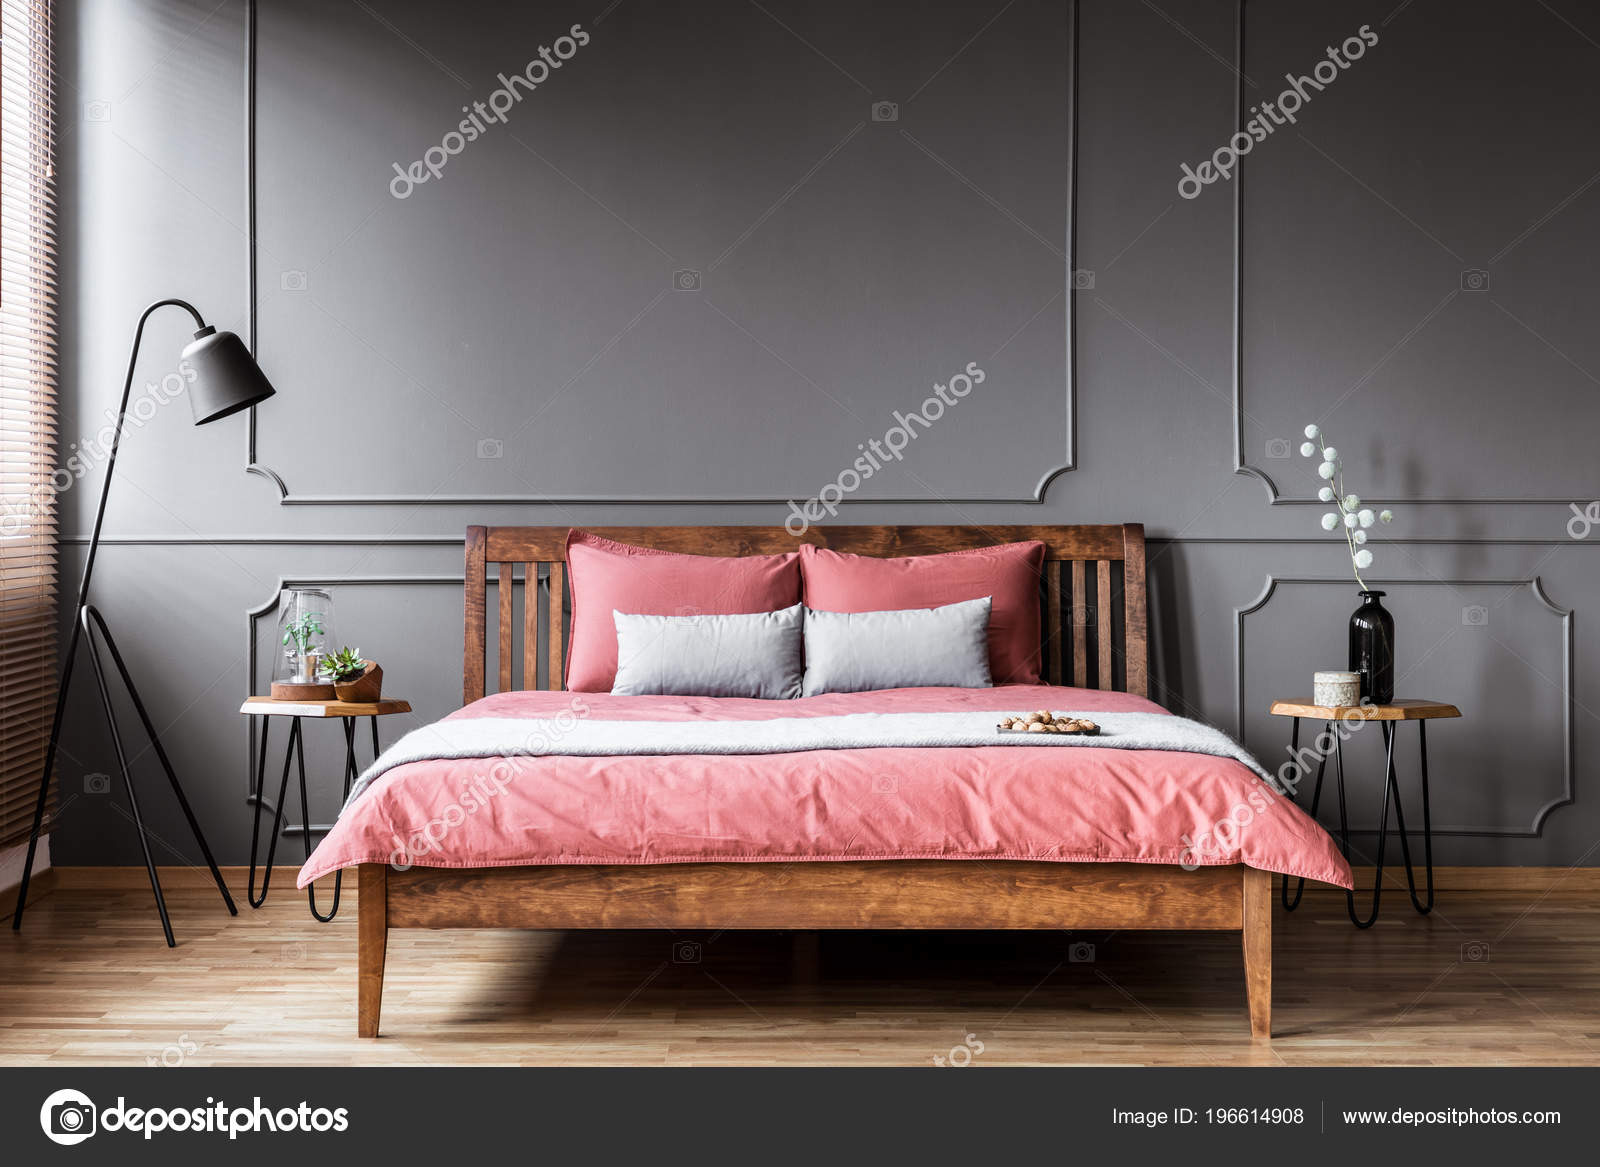 Picture of: King Size Bed Standing Bedroom Interior Bedside Tables Black Lamp Stock Photo C Photographee Eu 196614908